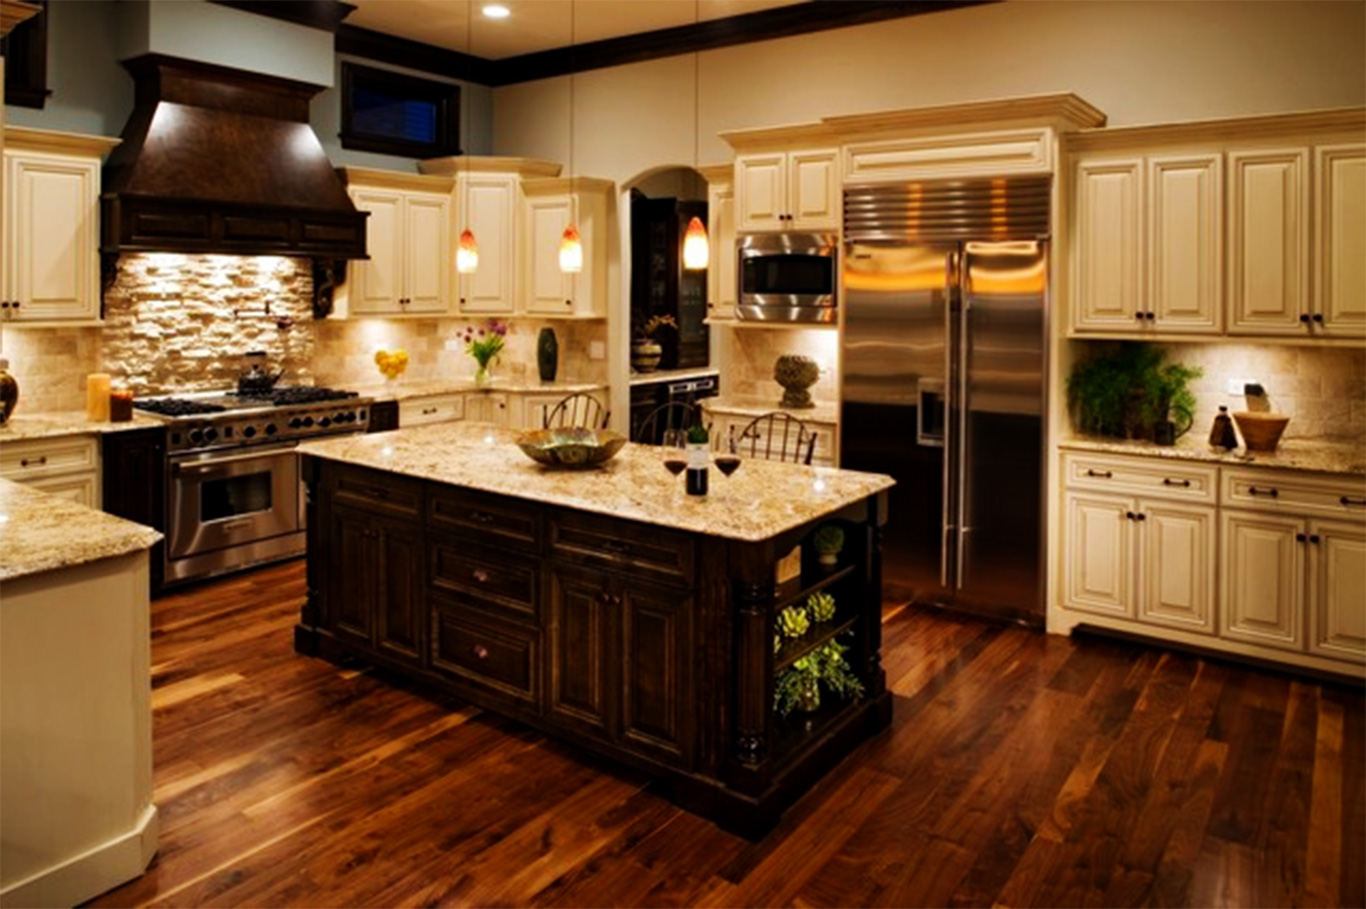 11 awesome type of kitchen design ideas for Kitchen ideas pictures designs